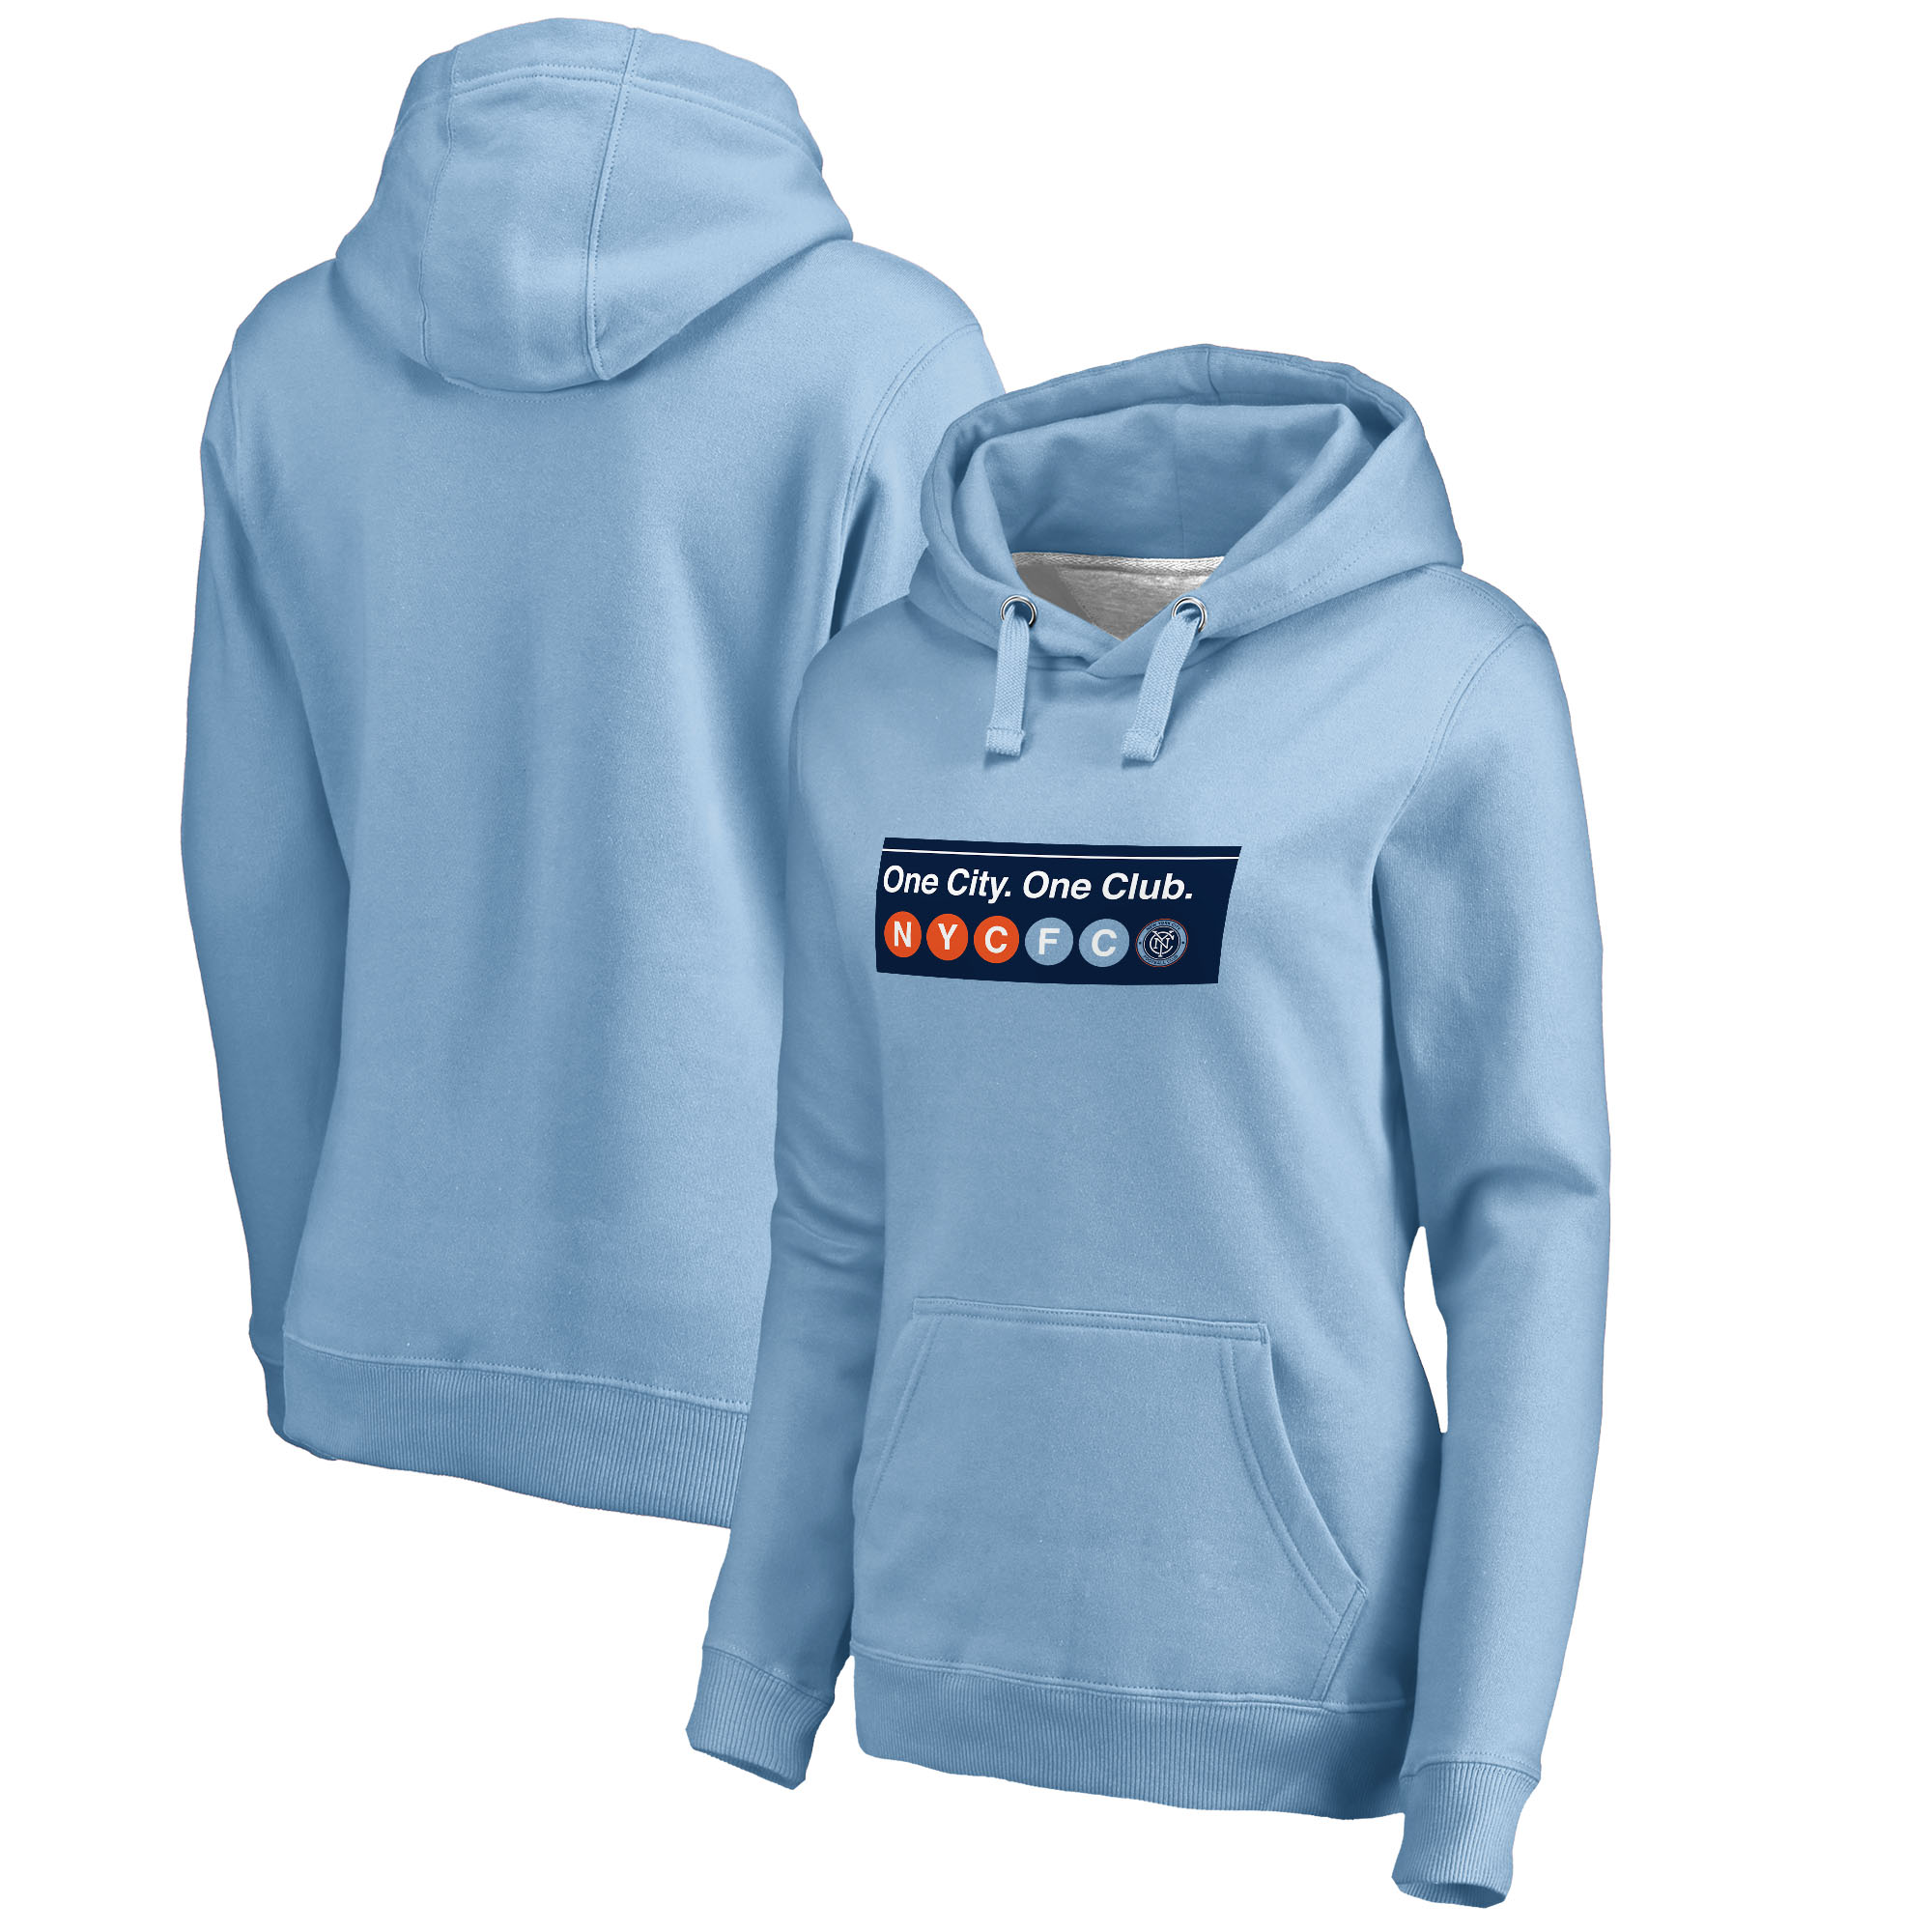 new arrivals bcfd0 957b1 New York City FC Fanatics Branded Women's Hometown Collection Pullover  Hoodie - Light Blue